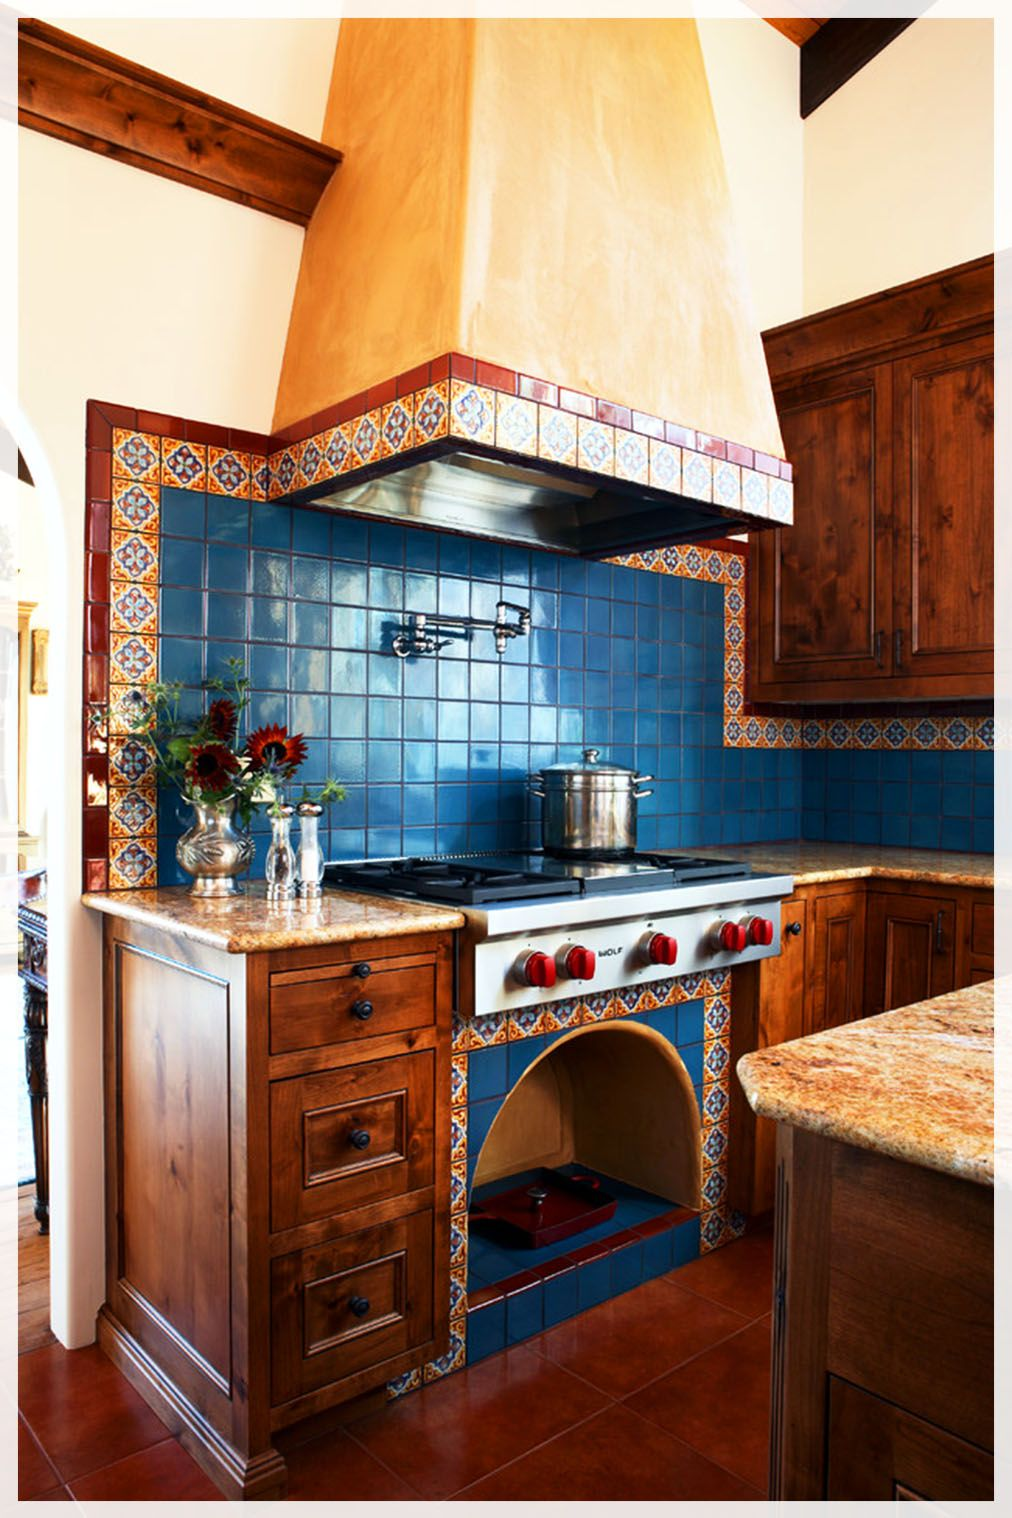 15 Mexican Kitchens Decor In 2020 In 2020 Mexican Kitchen Decor Mexican Style Kitchens Mexican Kitchens